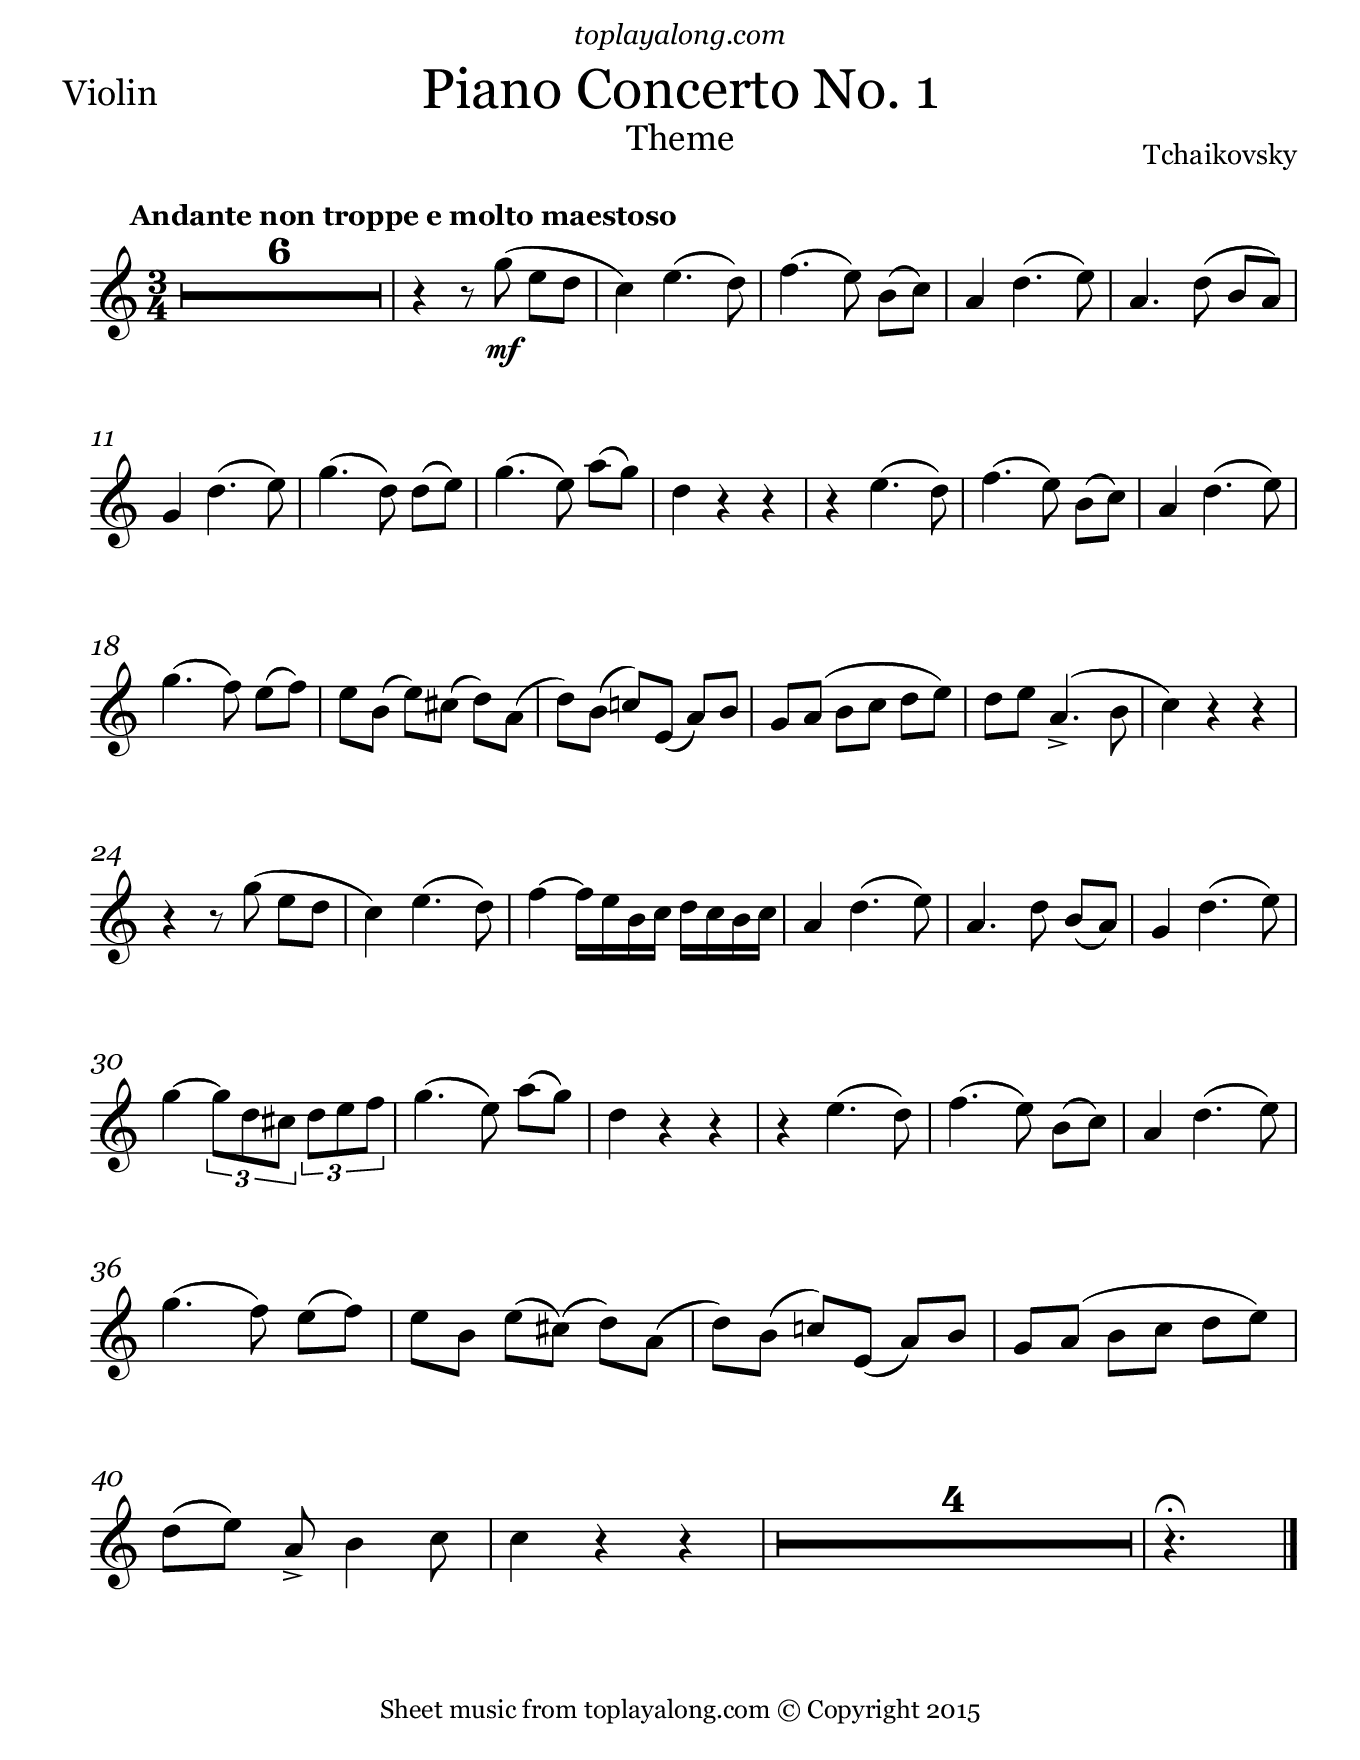 Piano Concerto No. 1 (Theme) by Tchaikovsky. Sheet music for Violin, page 1.